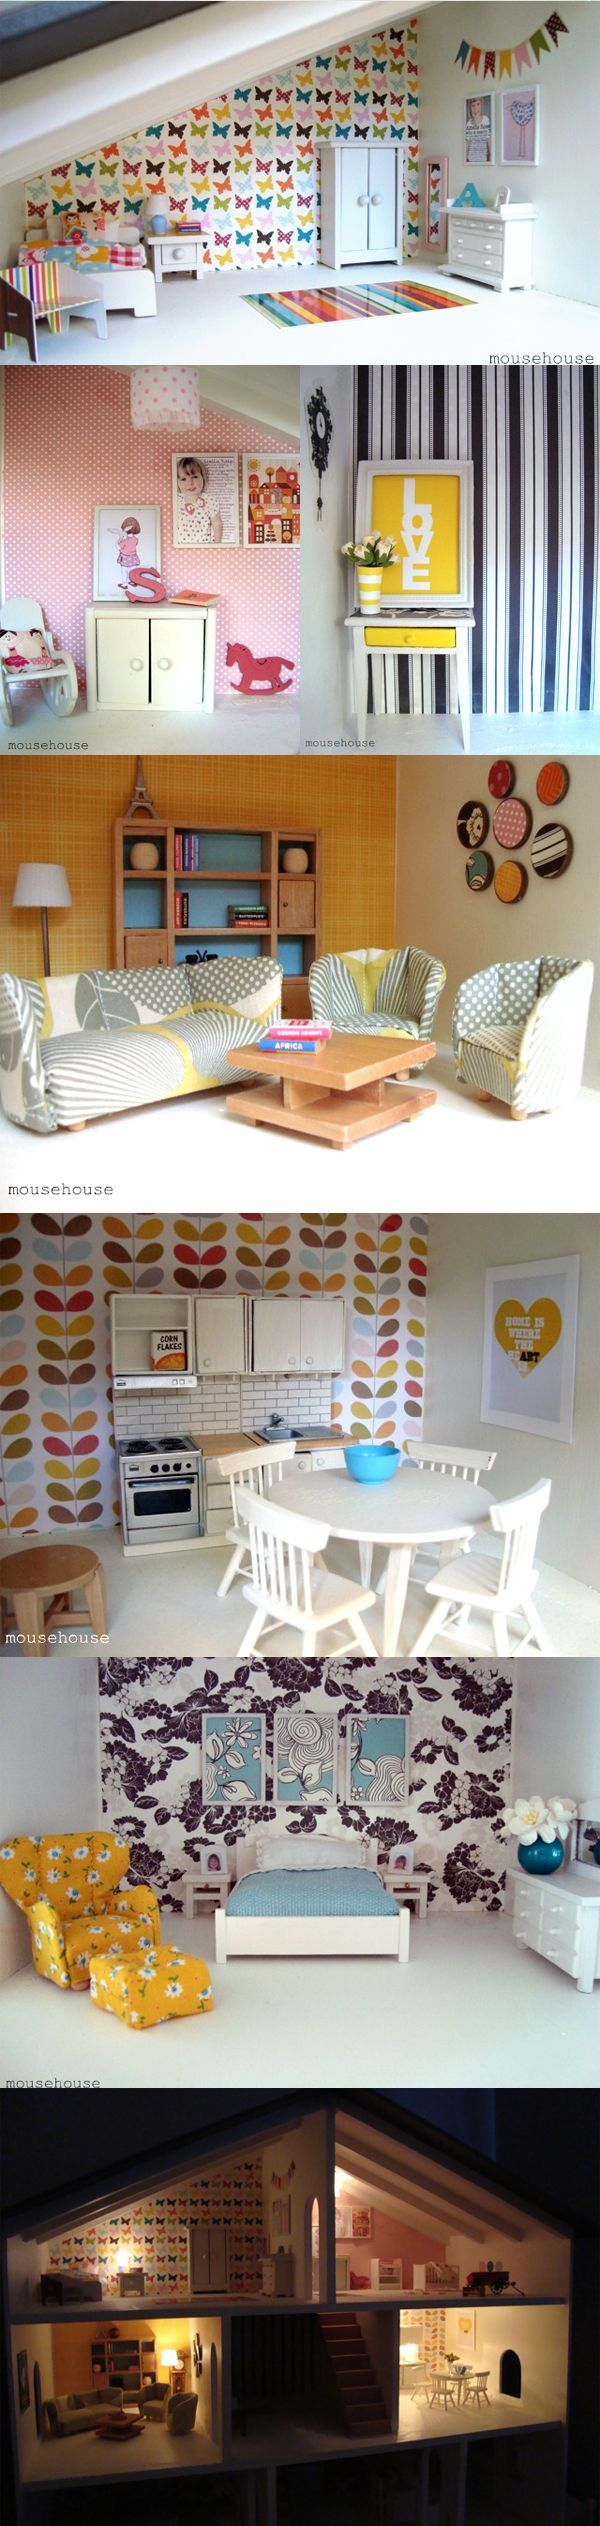 Amazing Modern #Dollhouse - Kitchen, living room and bedroom - Lovely and Tiny creations